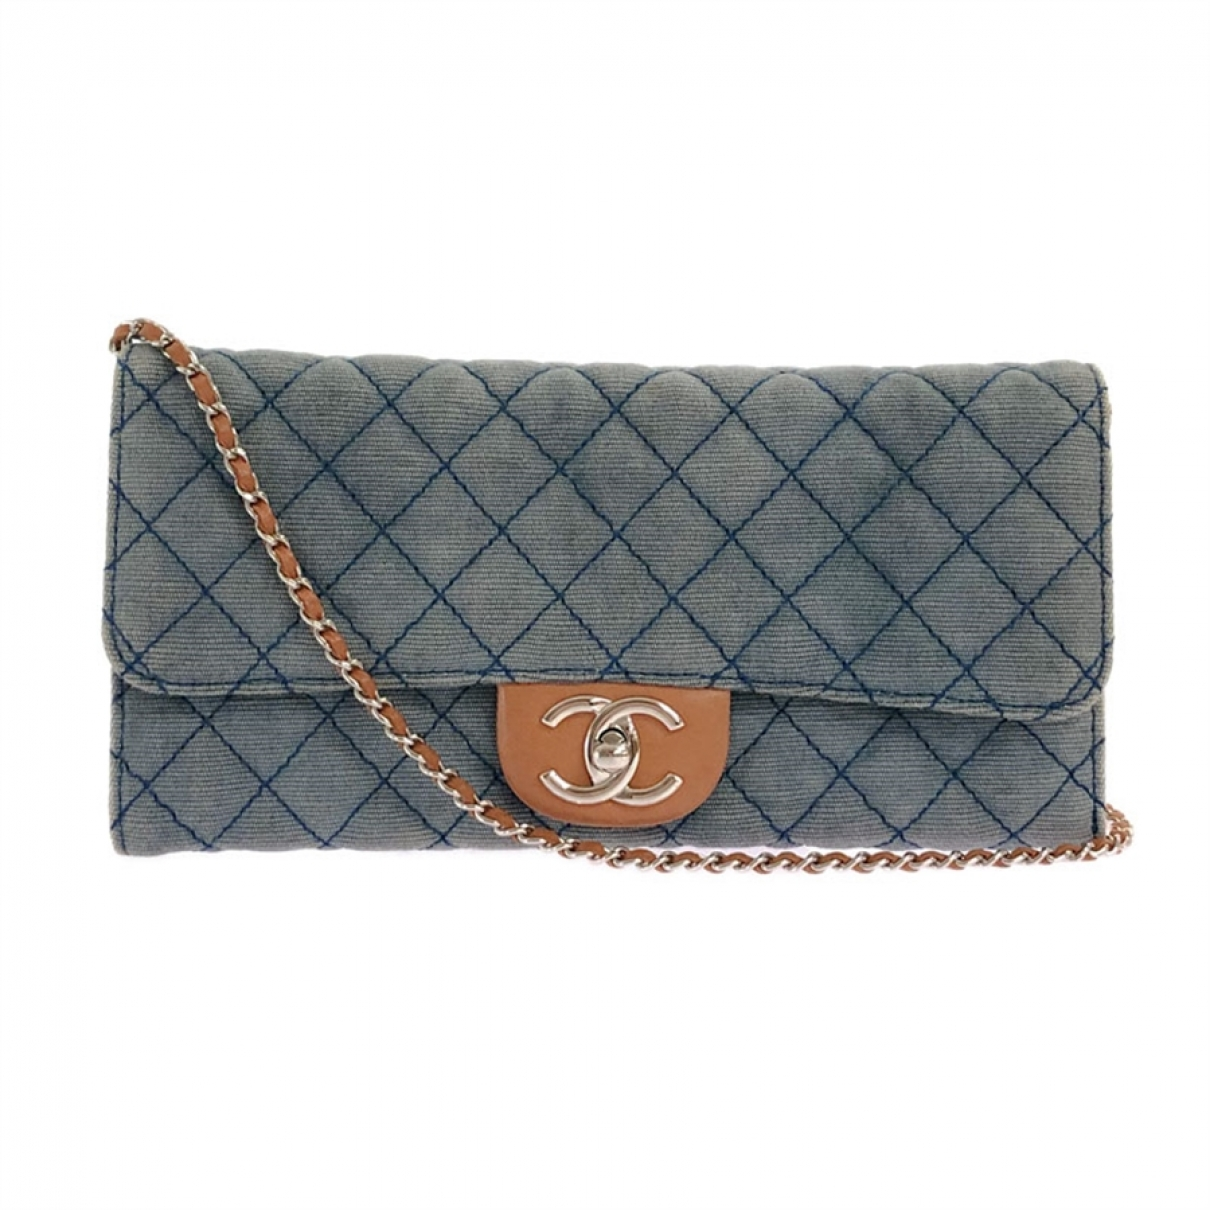 Bolsos clutch en Denim - Vaquero Azul Chanel